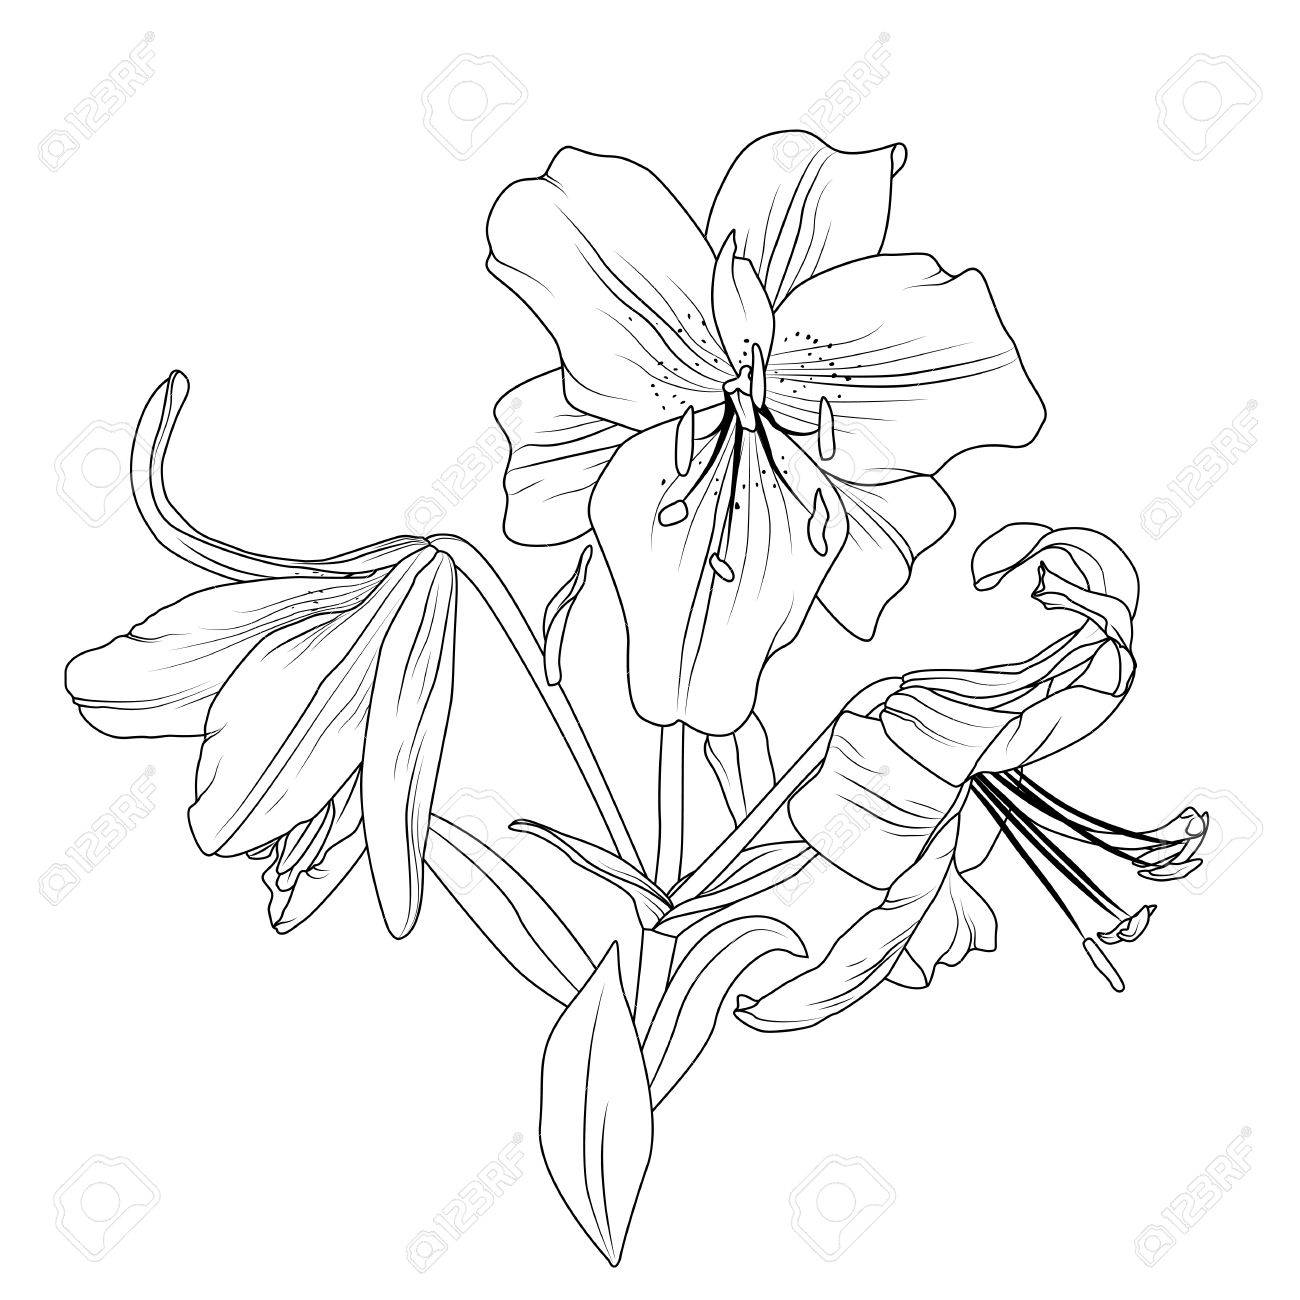 Beautiful blooming lily spring flowers bouquet composition detailed beautiful blooming lily spring flowers bouquet composition detailed outline sketch drawing isolated on white background izmirmasajfo Choice Image